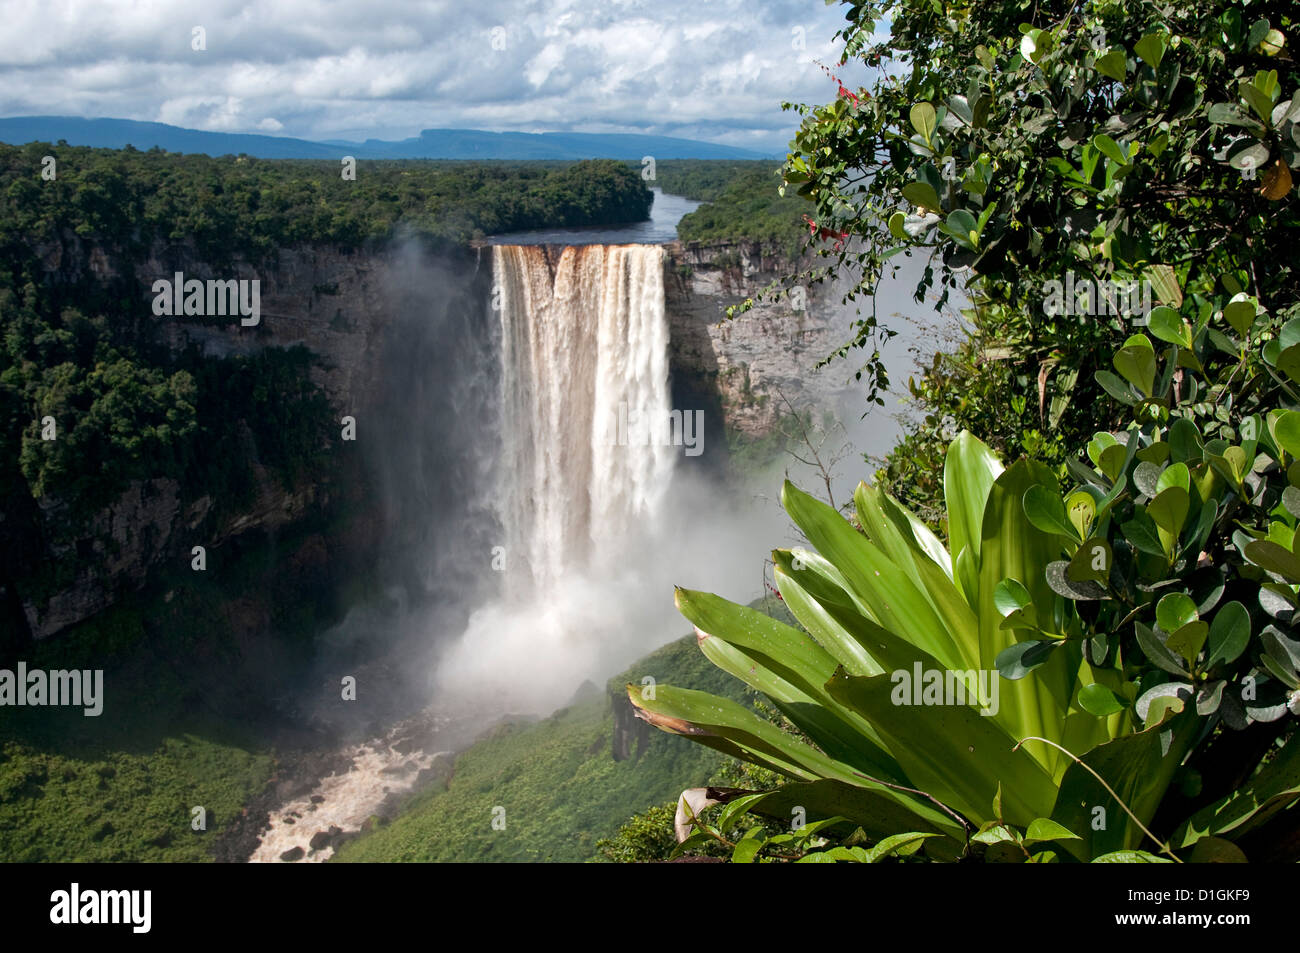 Giant Tank Bromeliad (Brocchinia micrantha) with Kaieteur Falls in the background, Kaieteur National Park, Guyana, - Stock Image